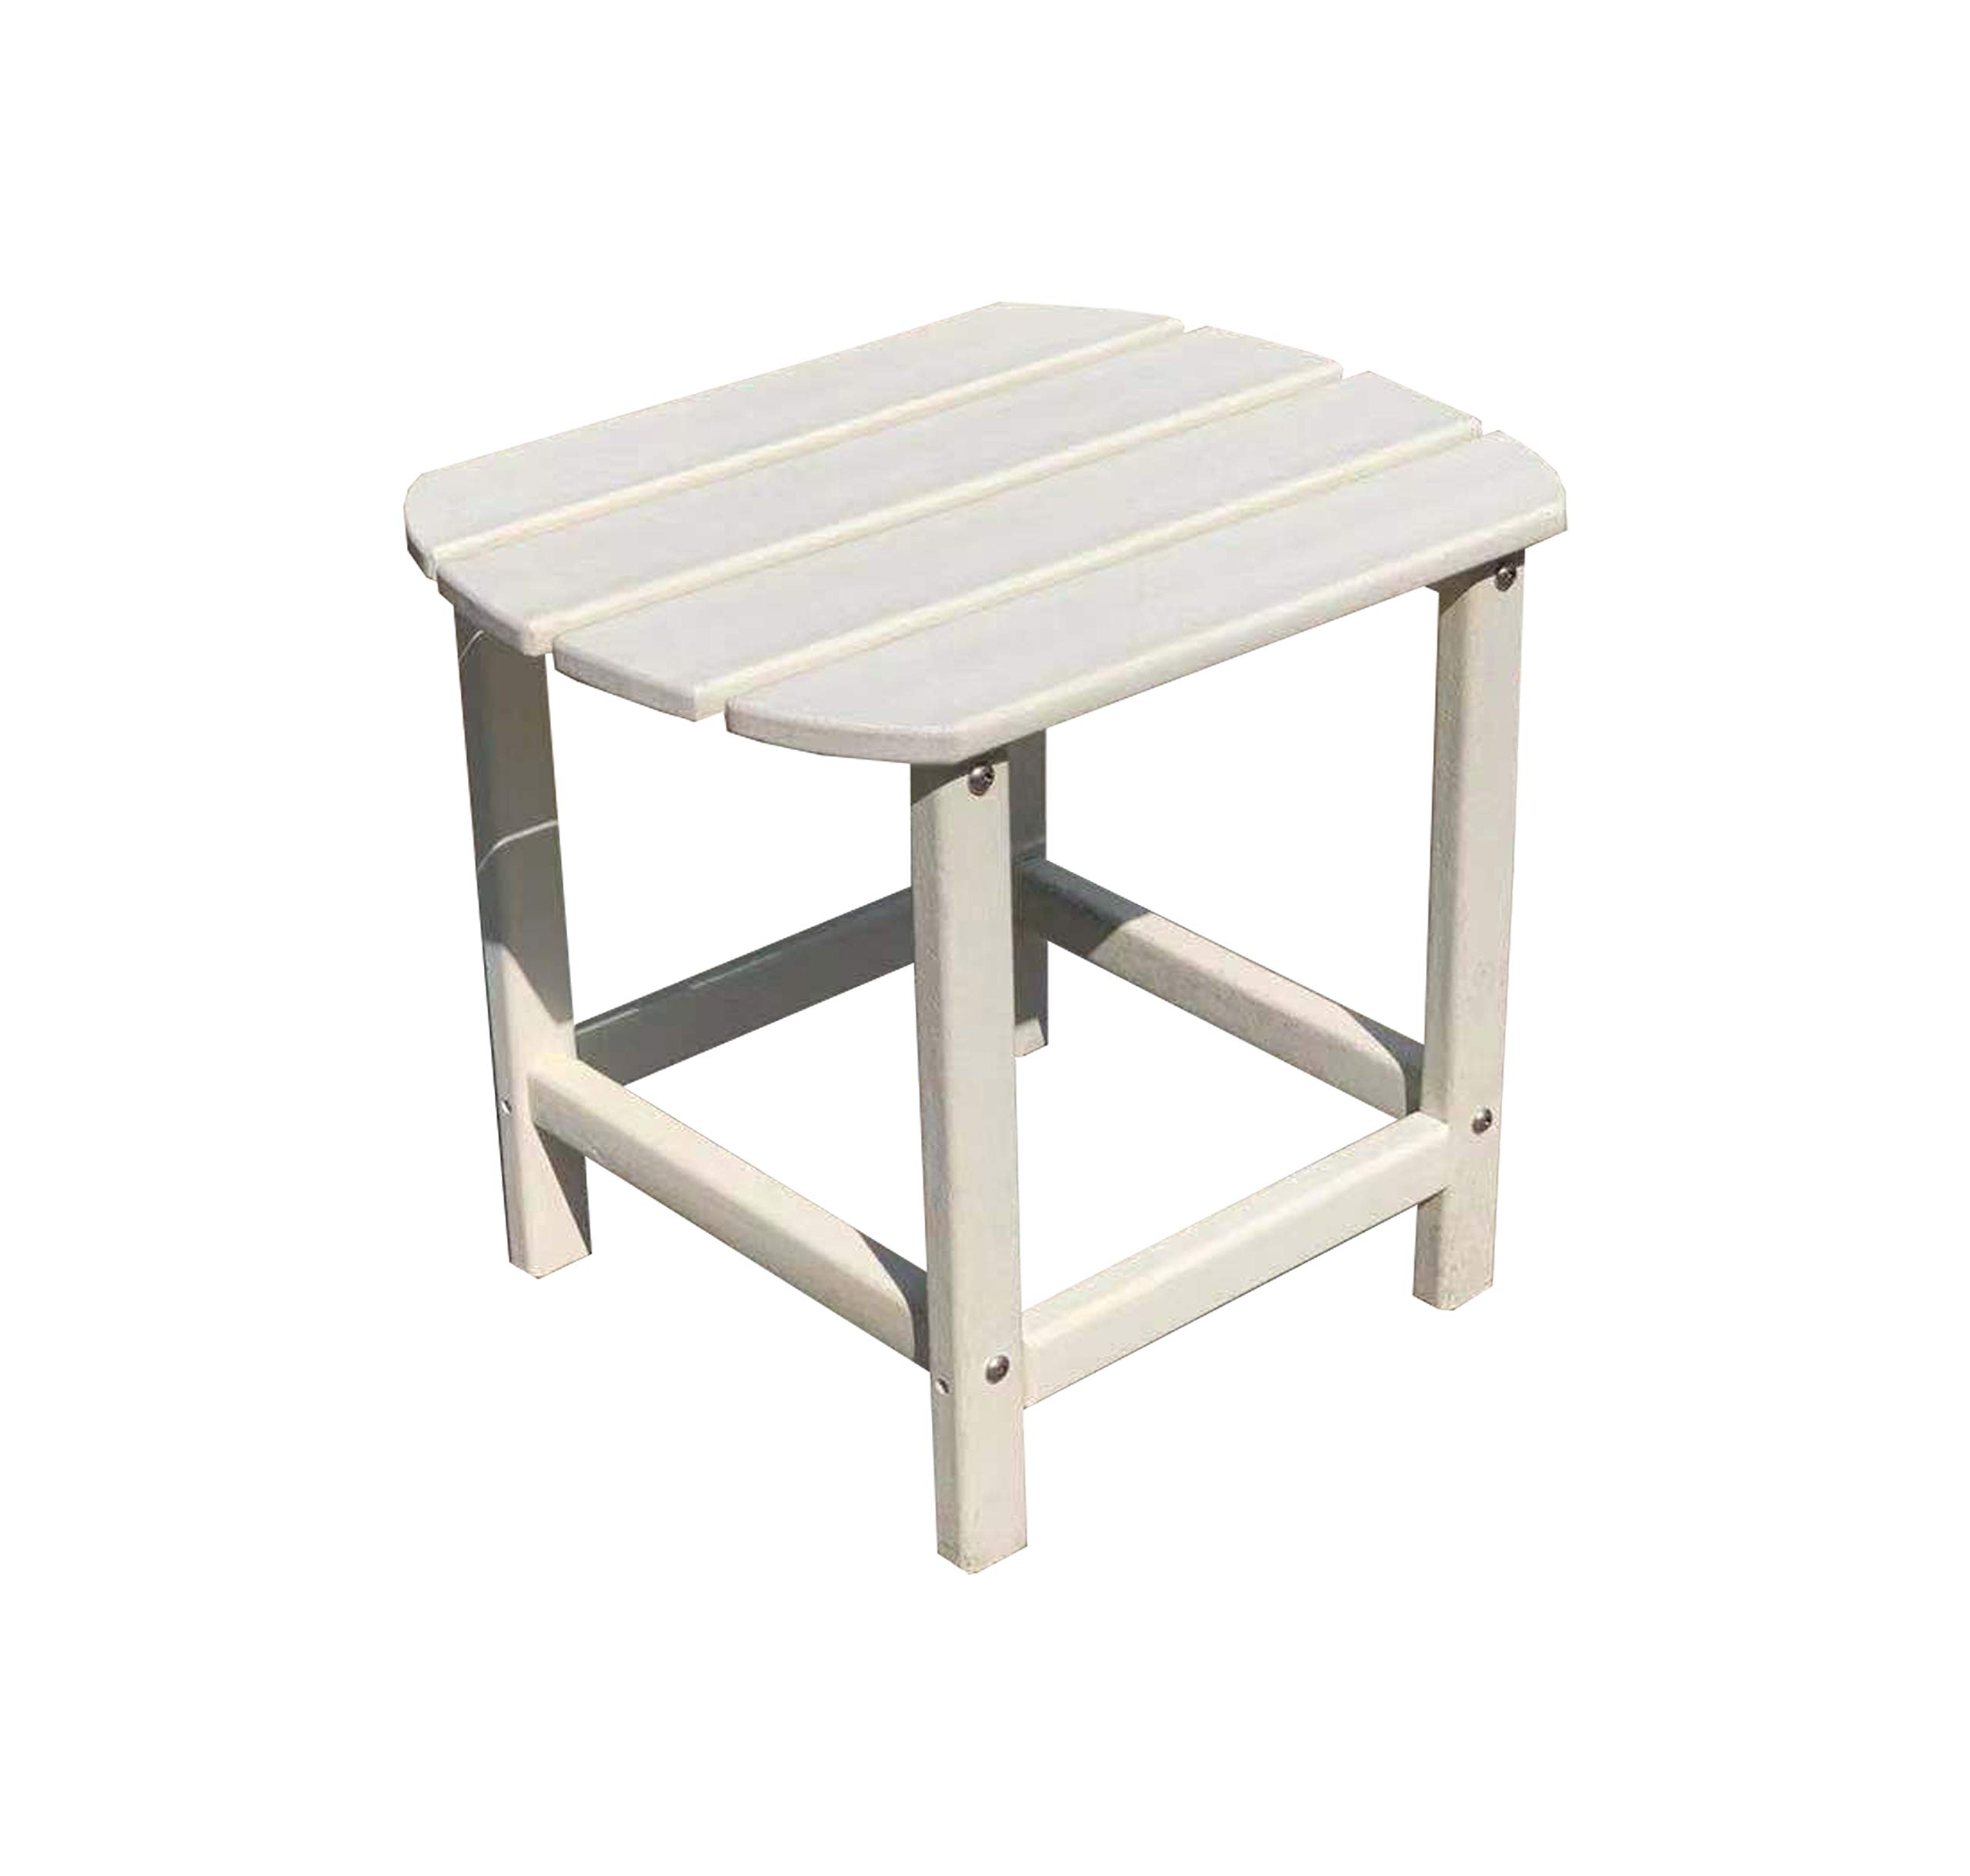 LuXeo LUX-1520-WHT-ST Corona Recycled Plastic Side Table, White by LuXeo